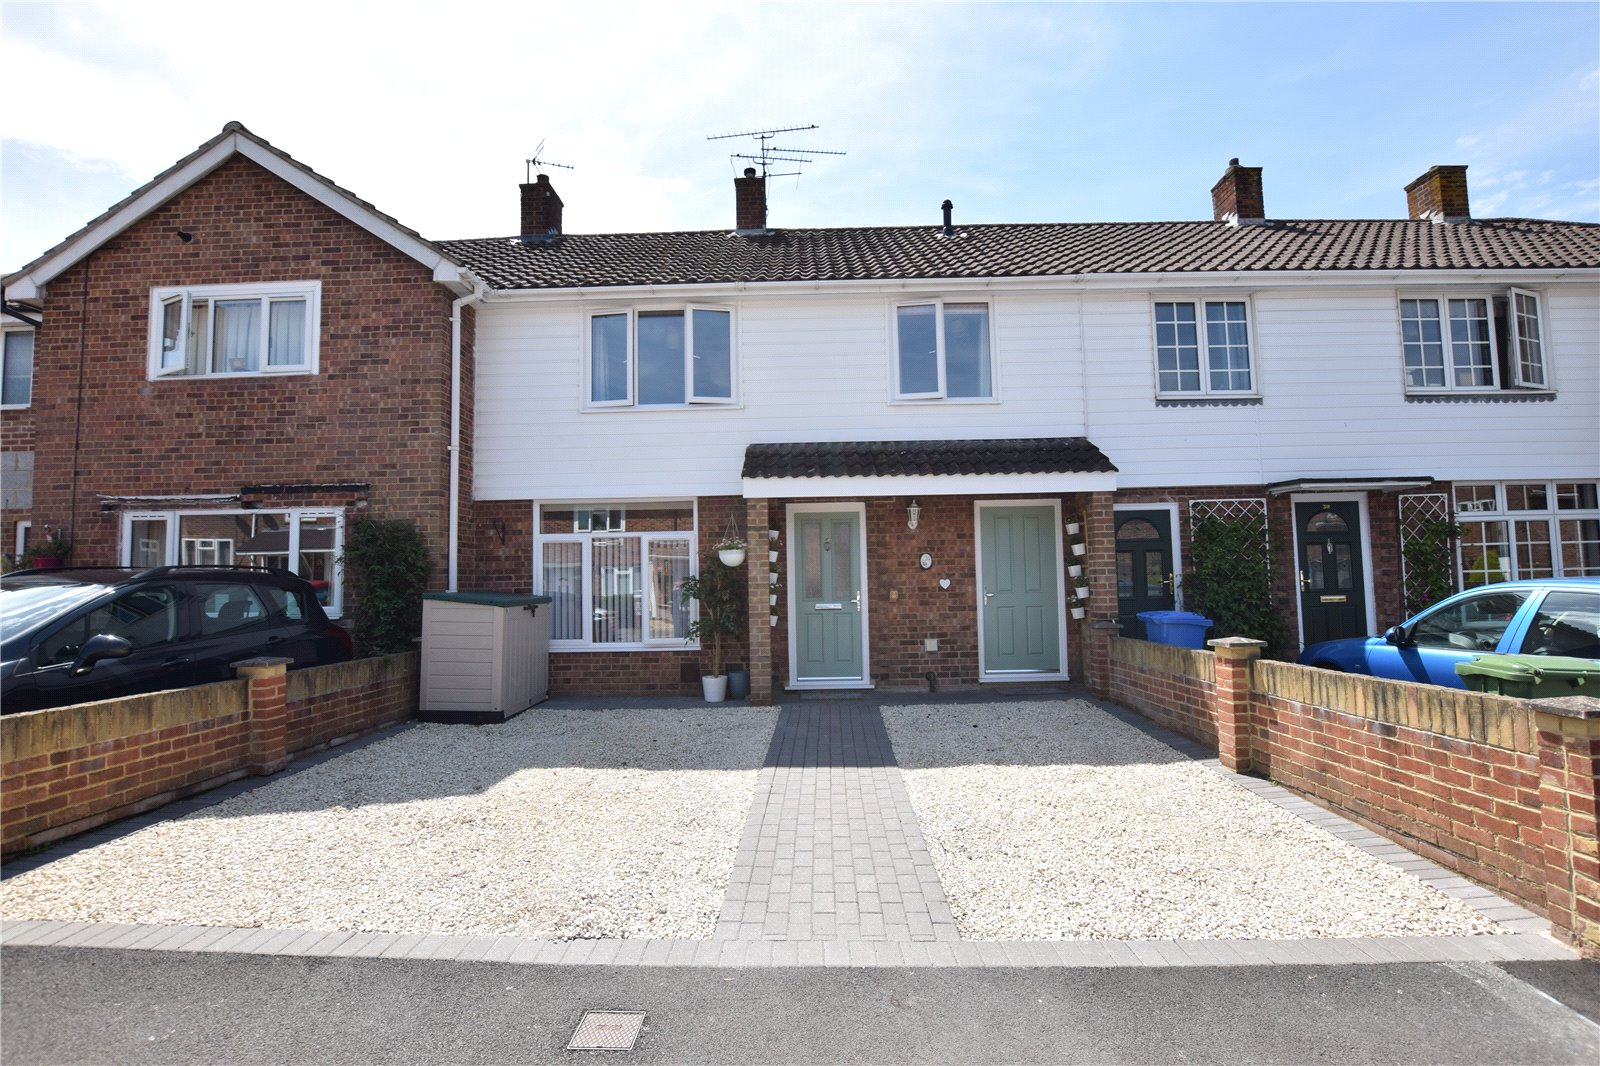 3 Bedrooms Terraced House for sale in Garth Square, Bracknell, Berkshire, RG42